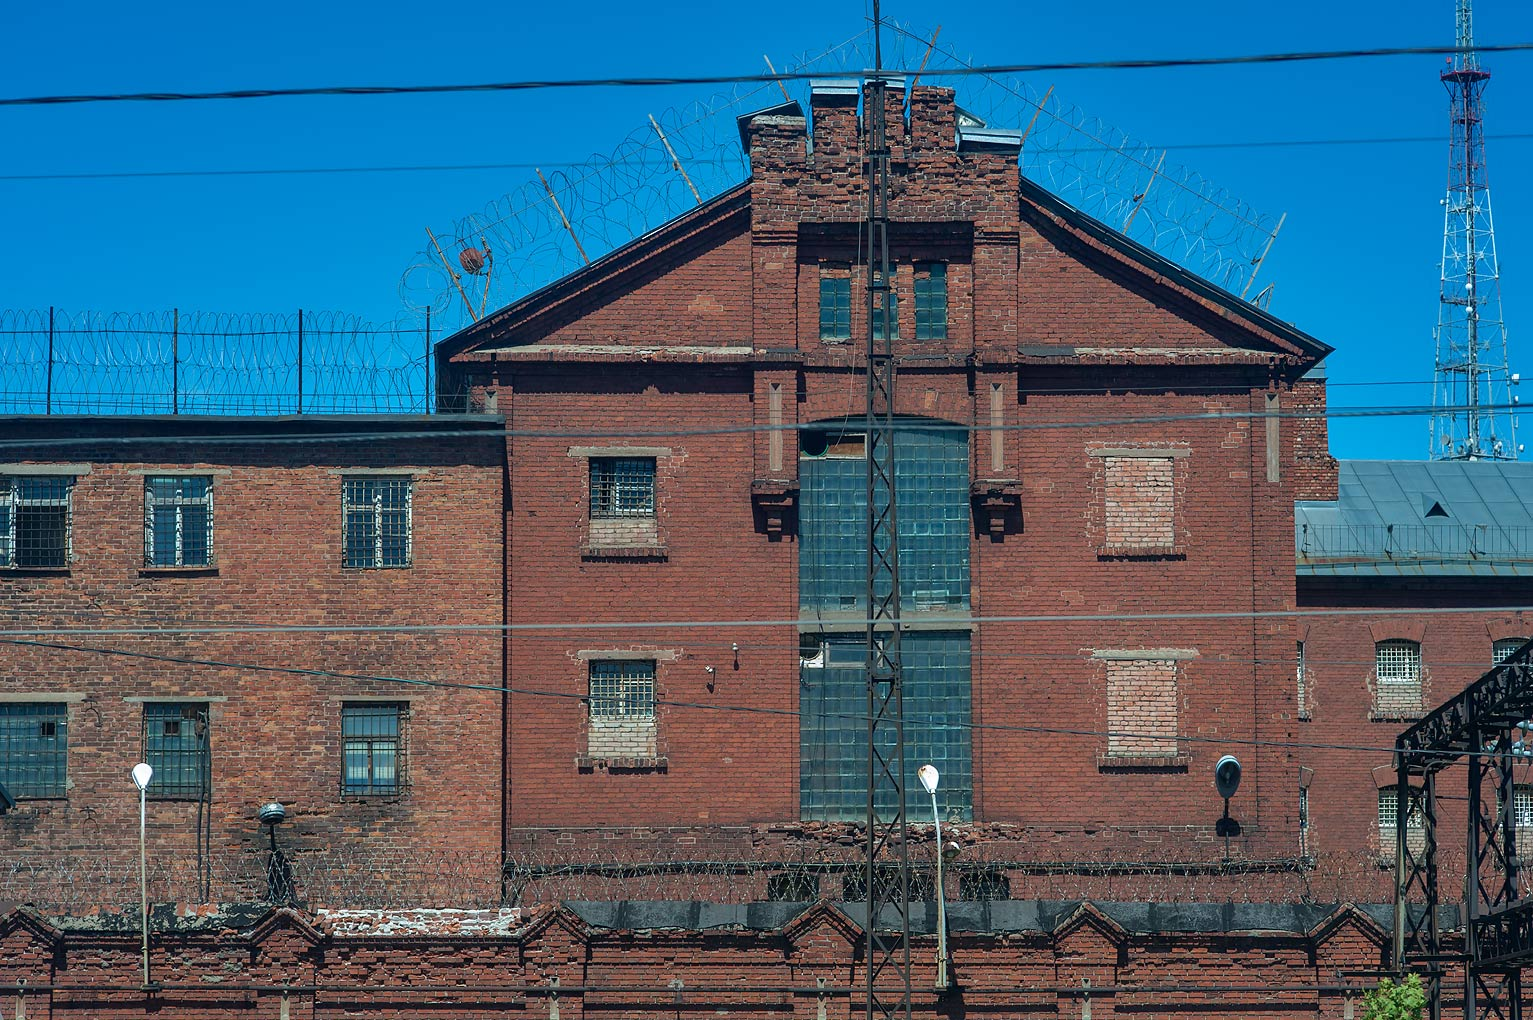 City prison from a window of a train. Vyborg, Russia